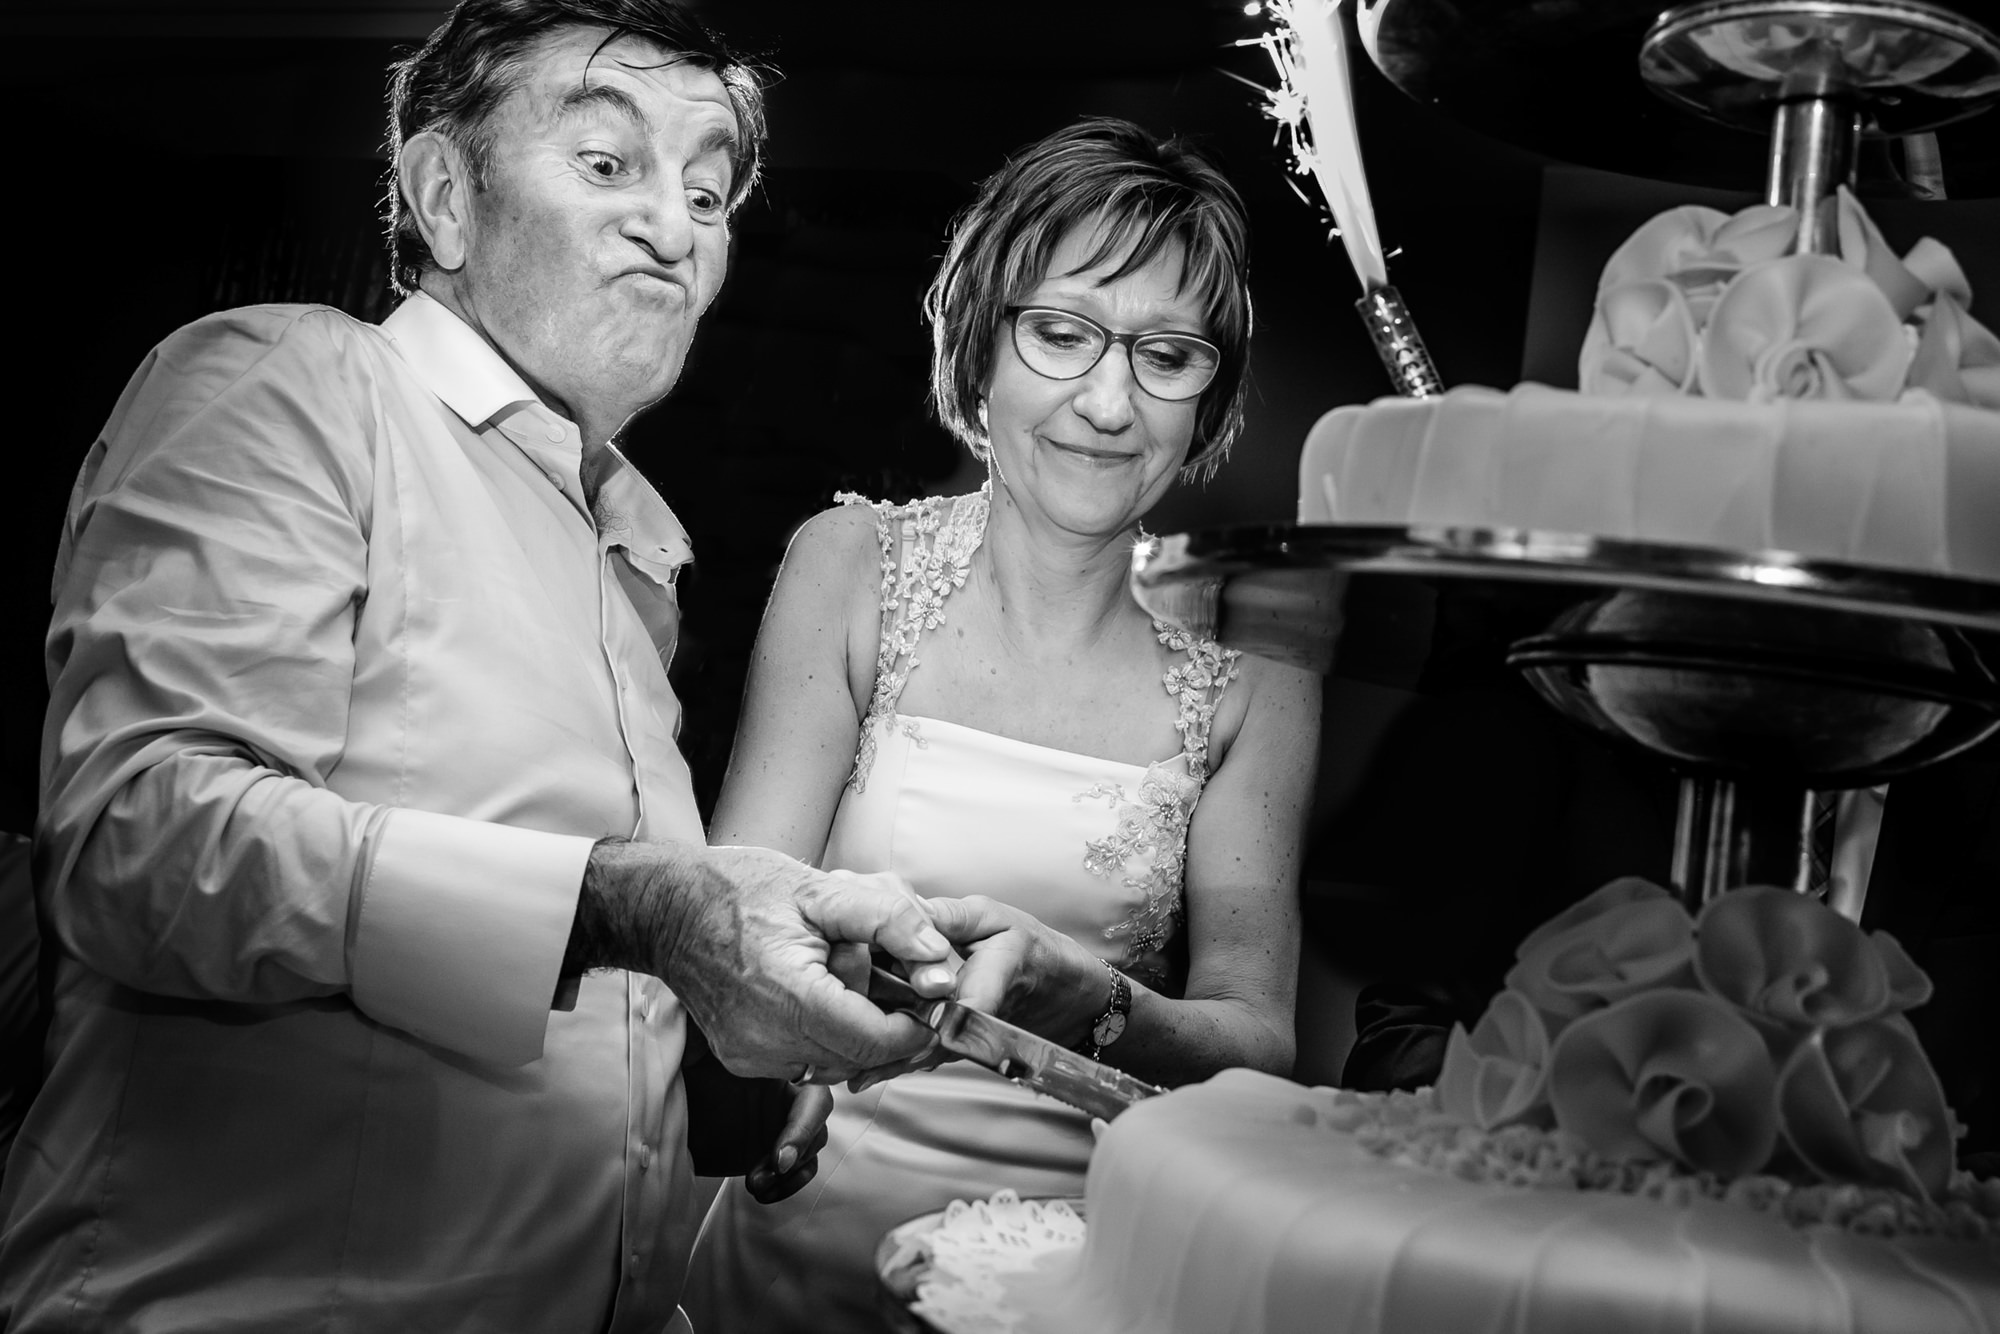 Fun bride and groom cutting wediding cake - photo by Philippe Swiggers